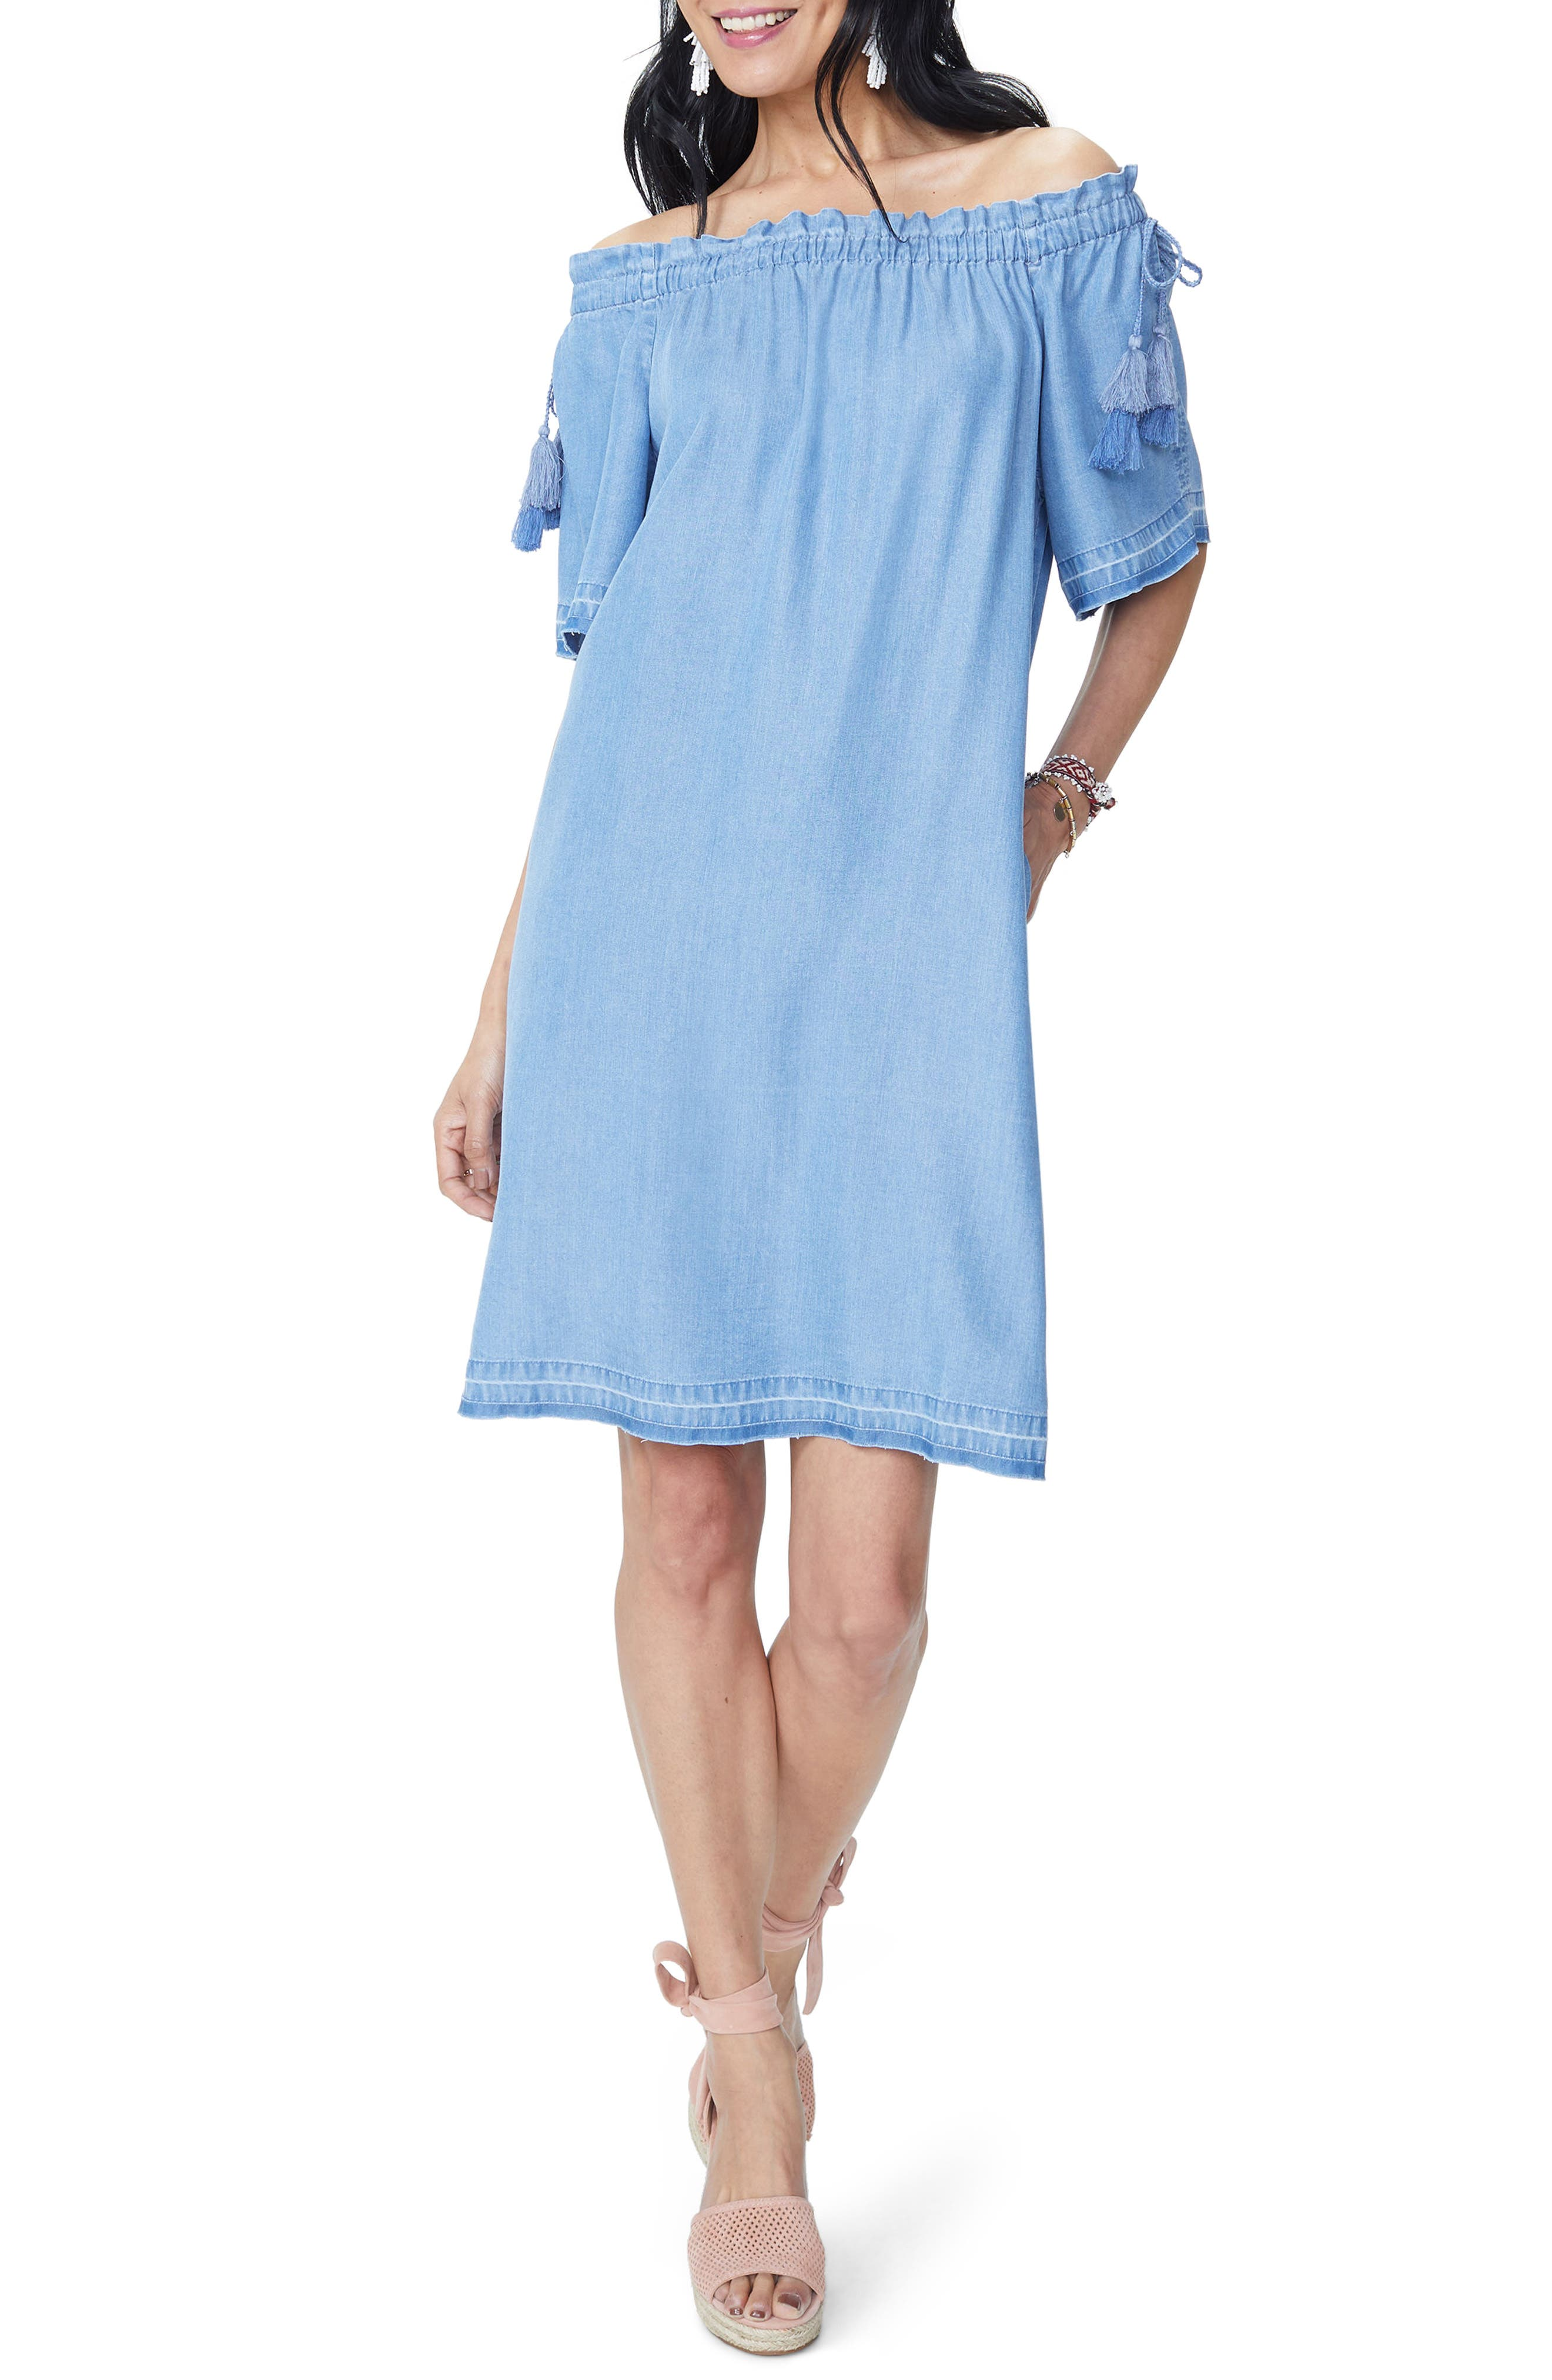 Off the Shoulder Tassel Tie Chambray Dress,                         Main,                         color, Low Tide Wash